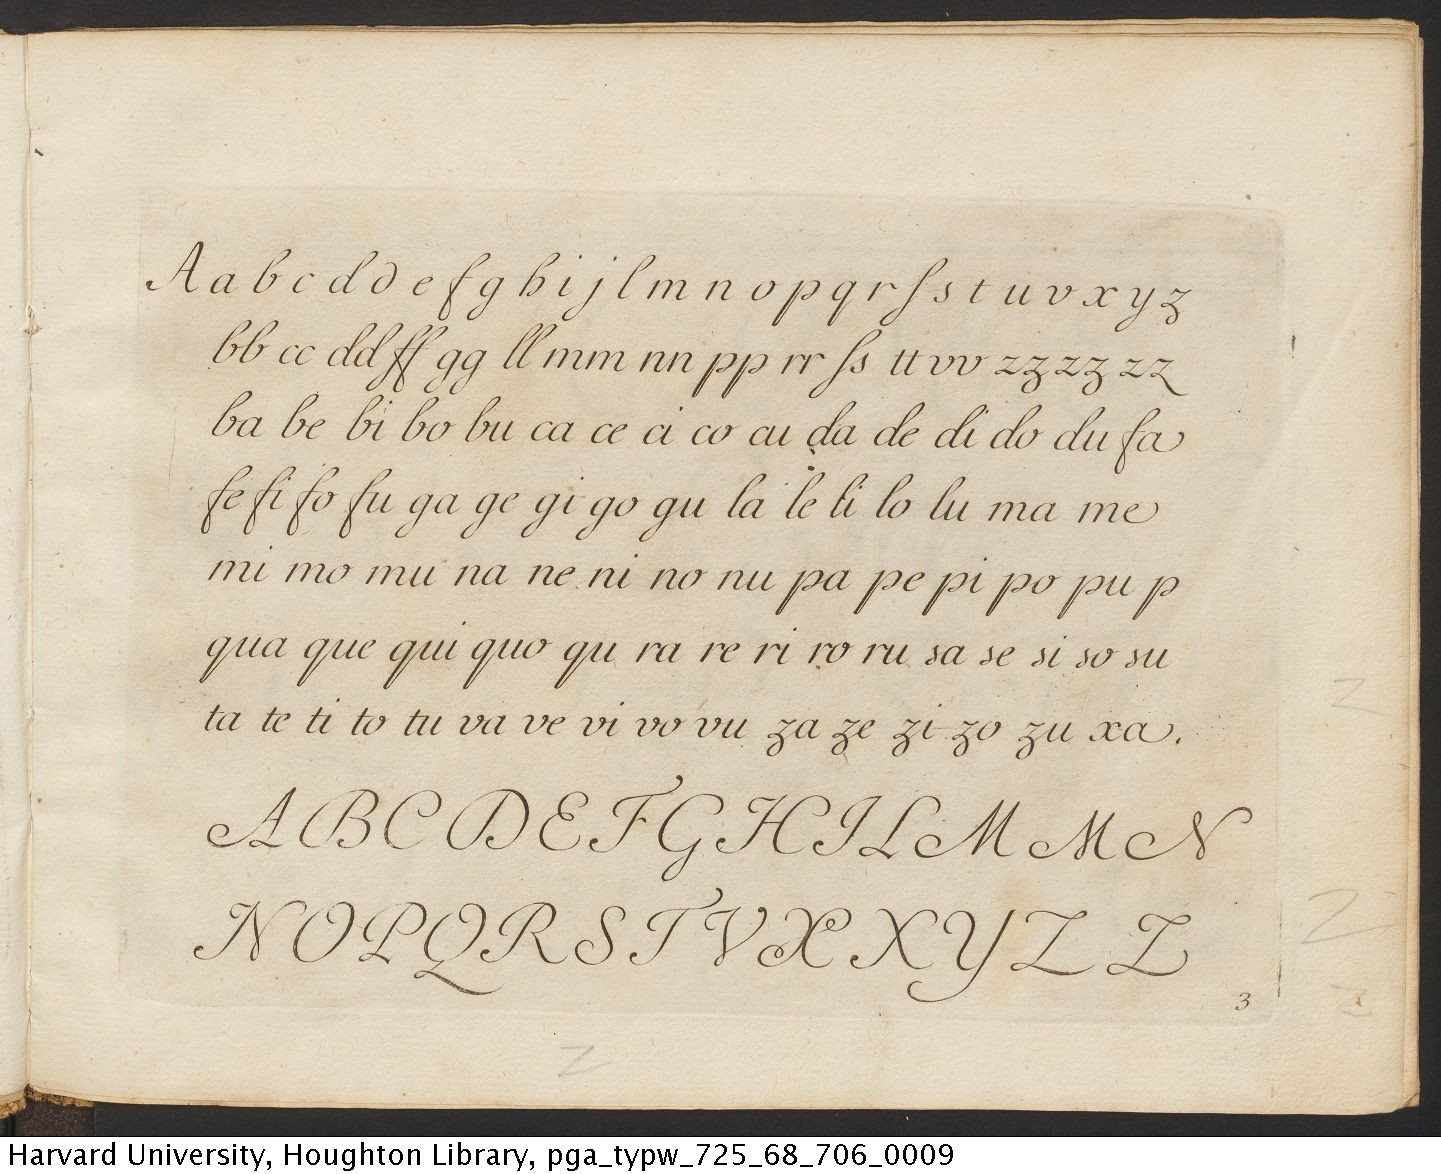 Polanzani, Francesco, 1700- La penna da scrivere all' uso corrente, [1768?] TypW 725.68.706